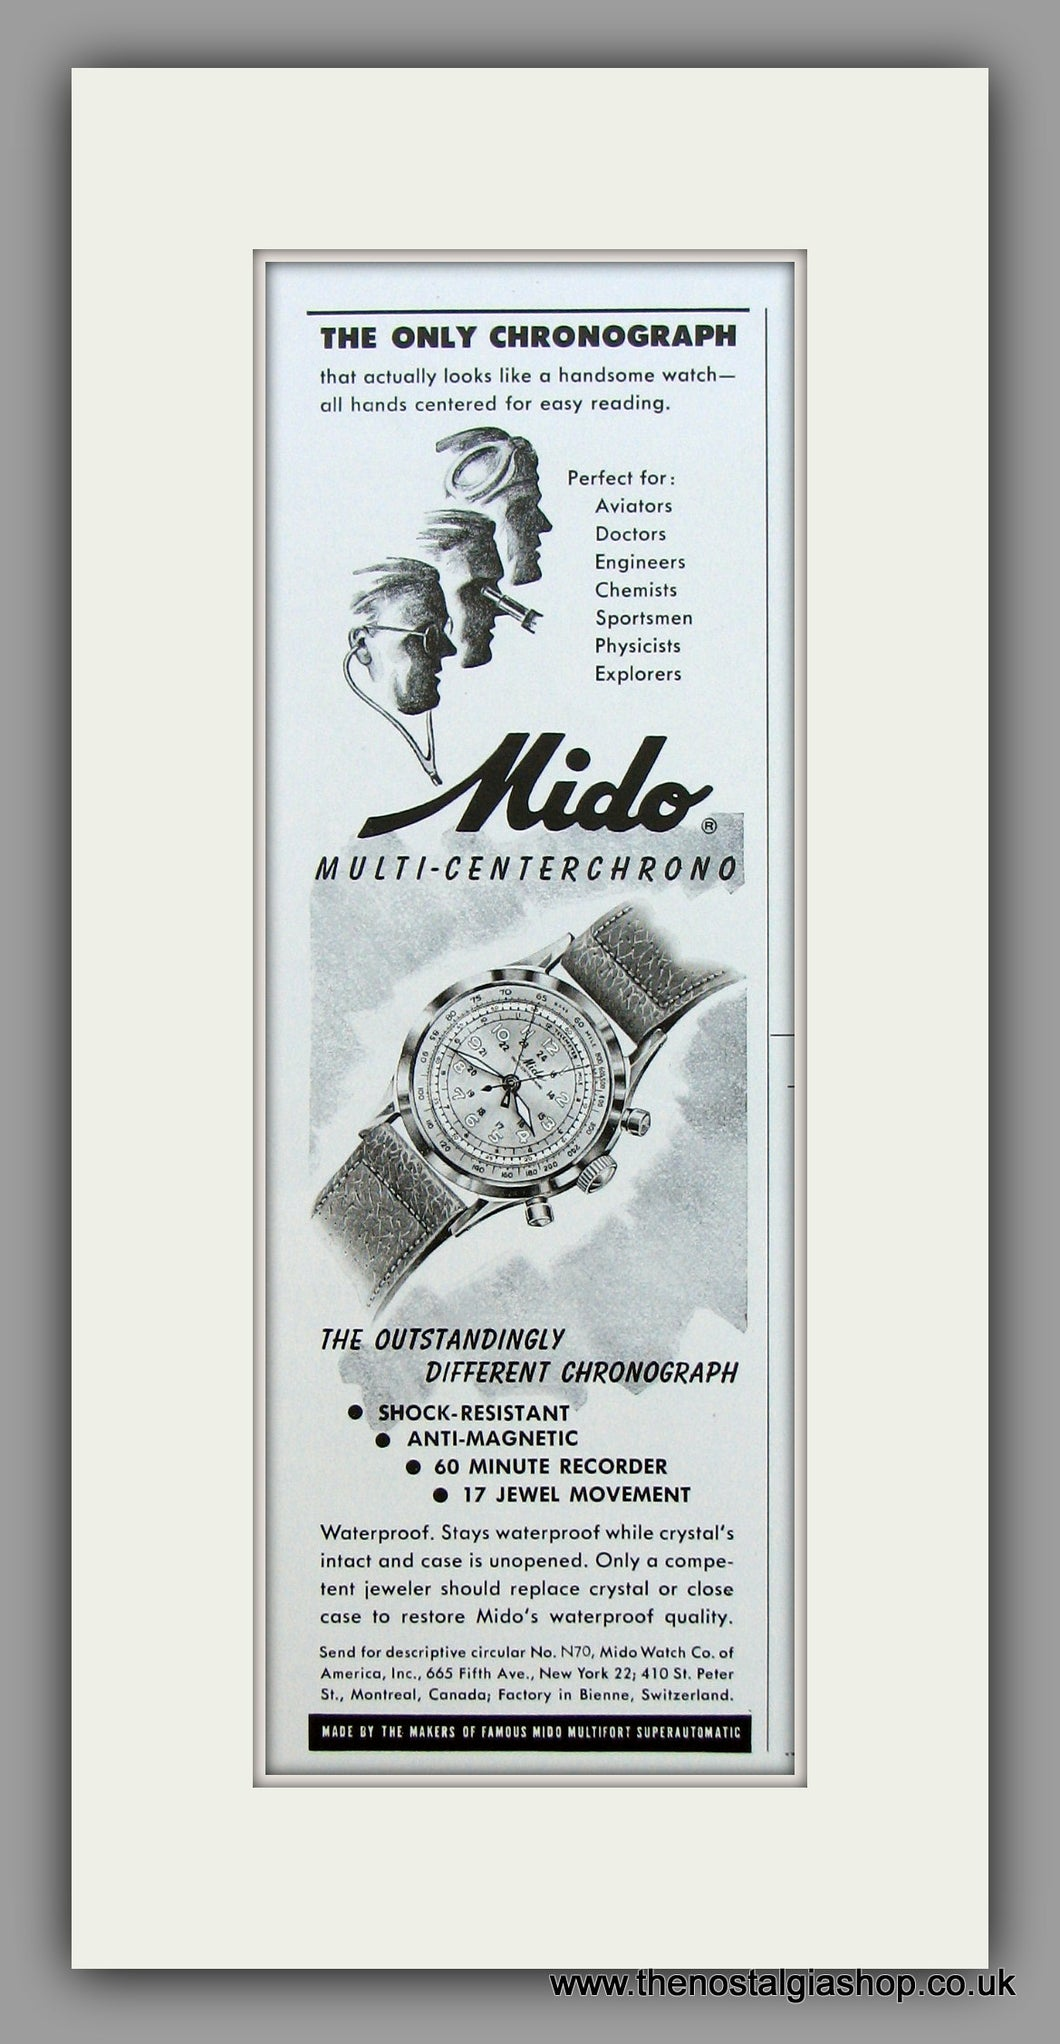 Mido Multi-Centerchrono Watches. 1950 Original Vintage Advert  (ref AD7938)